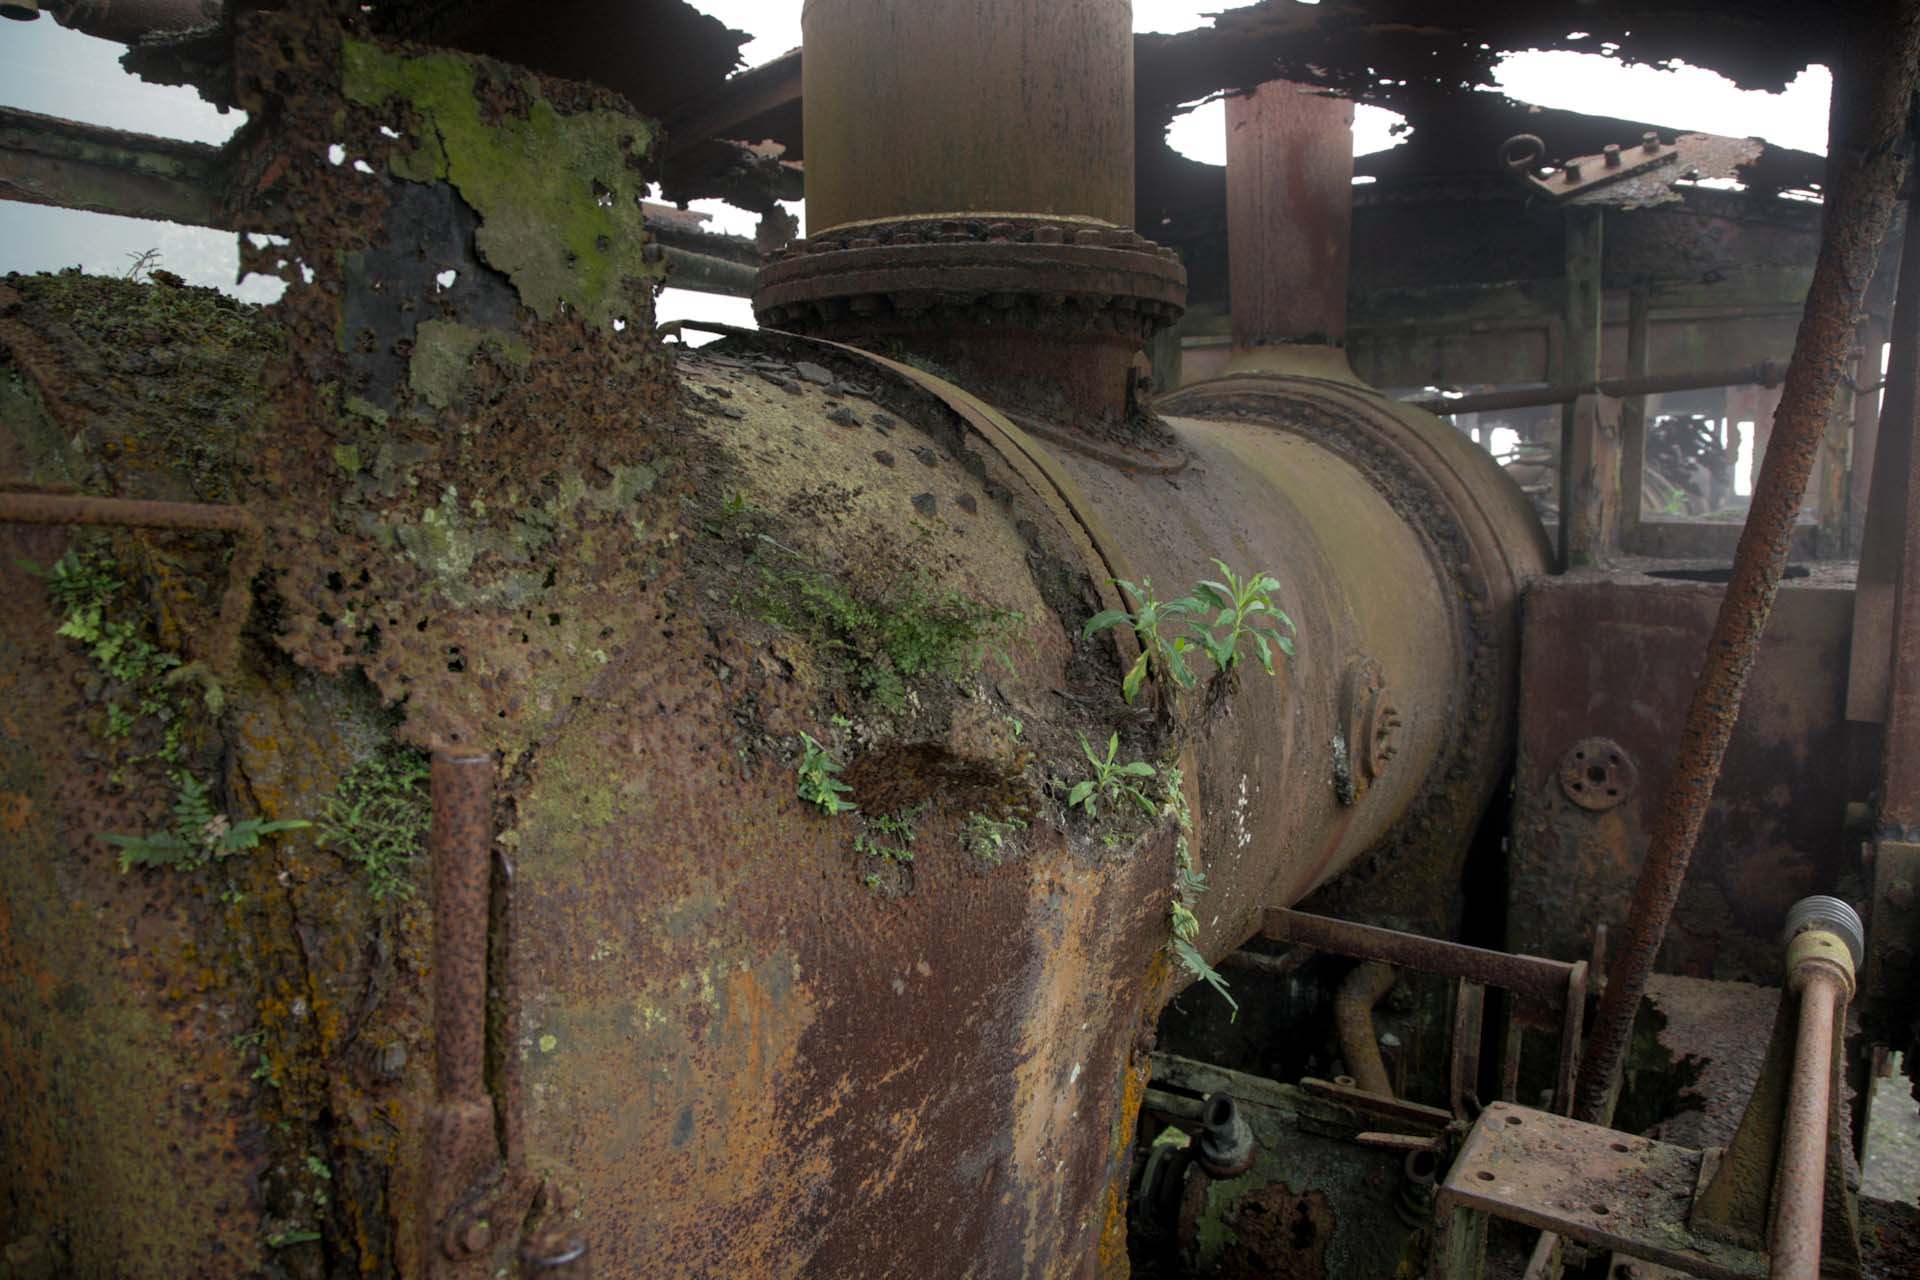 ...and old steam locomotives are rusting away on the grass.